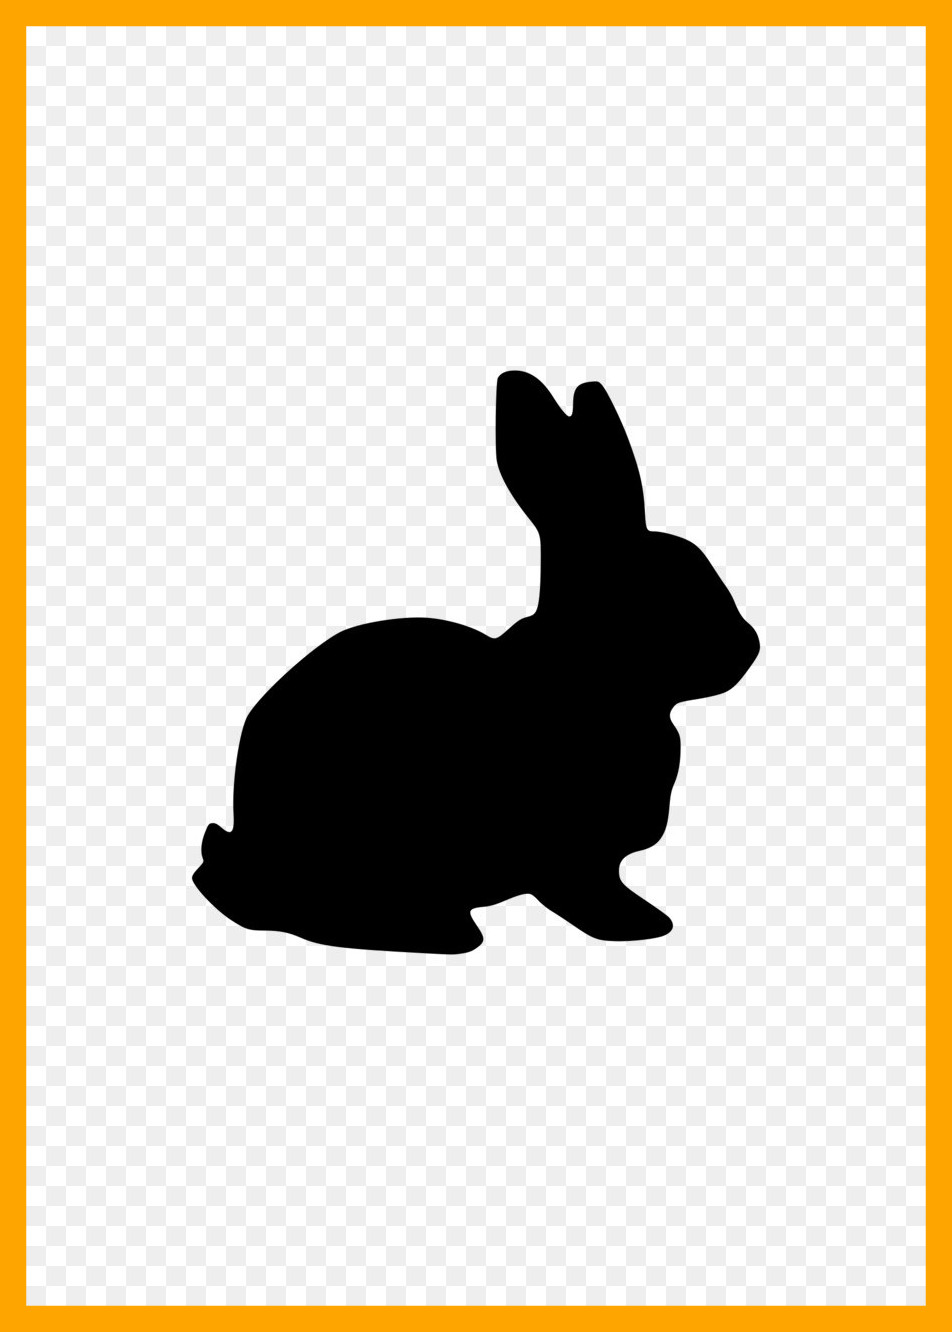 952x1332 Astonishing Easter Bunny White Rabbit Hare Clip Art Shadow Png